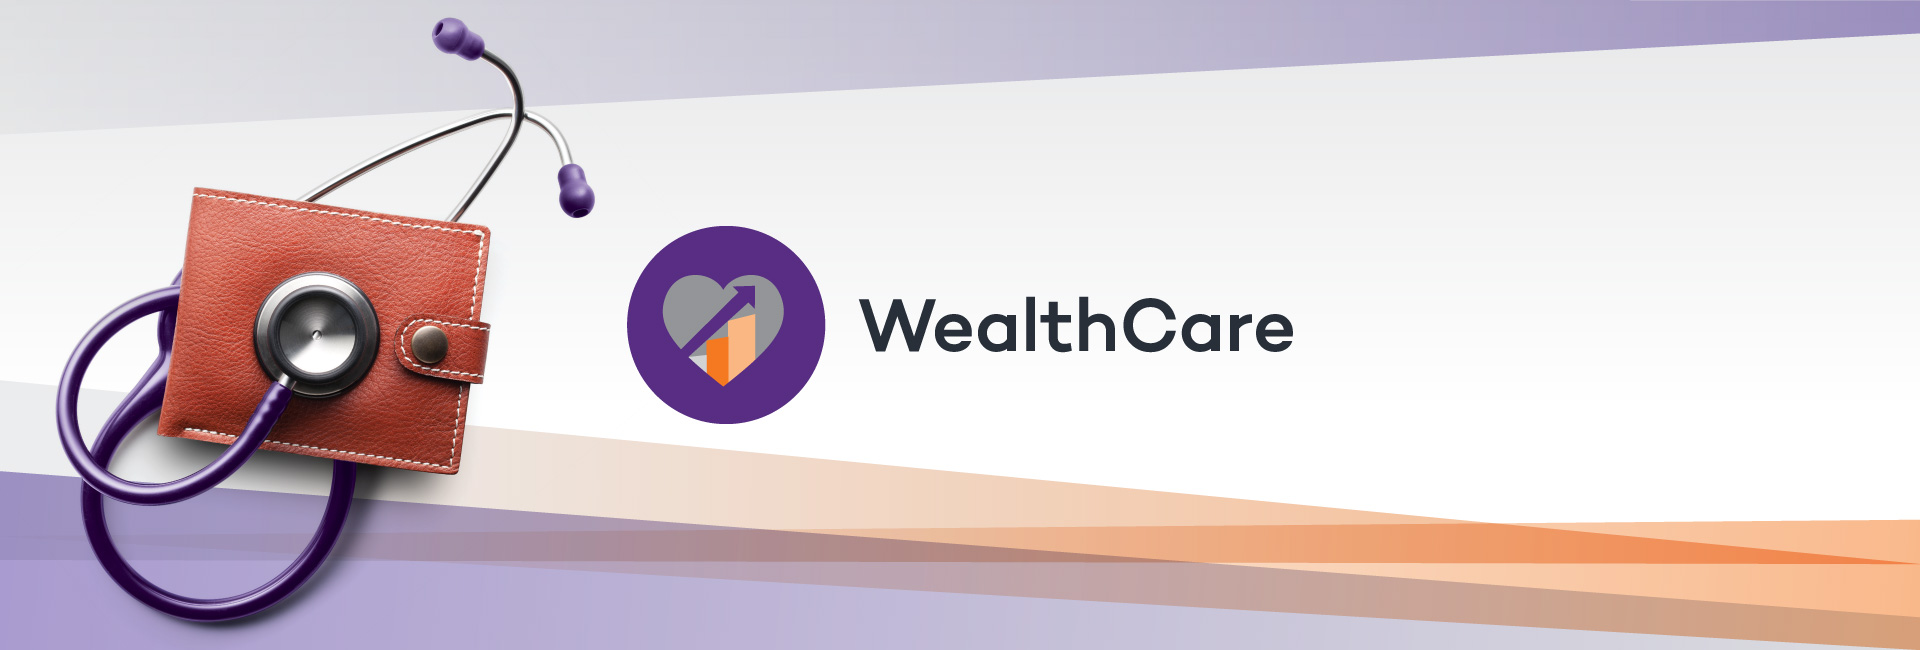 WealthCare-Homepage-Banner